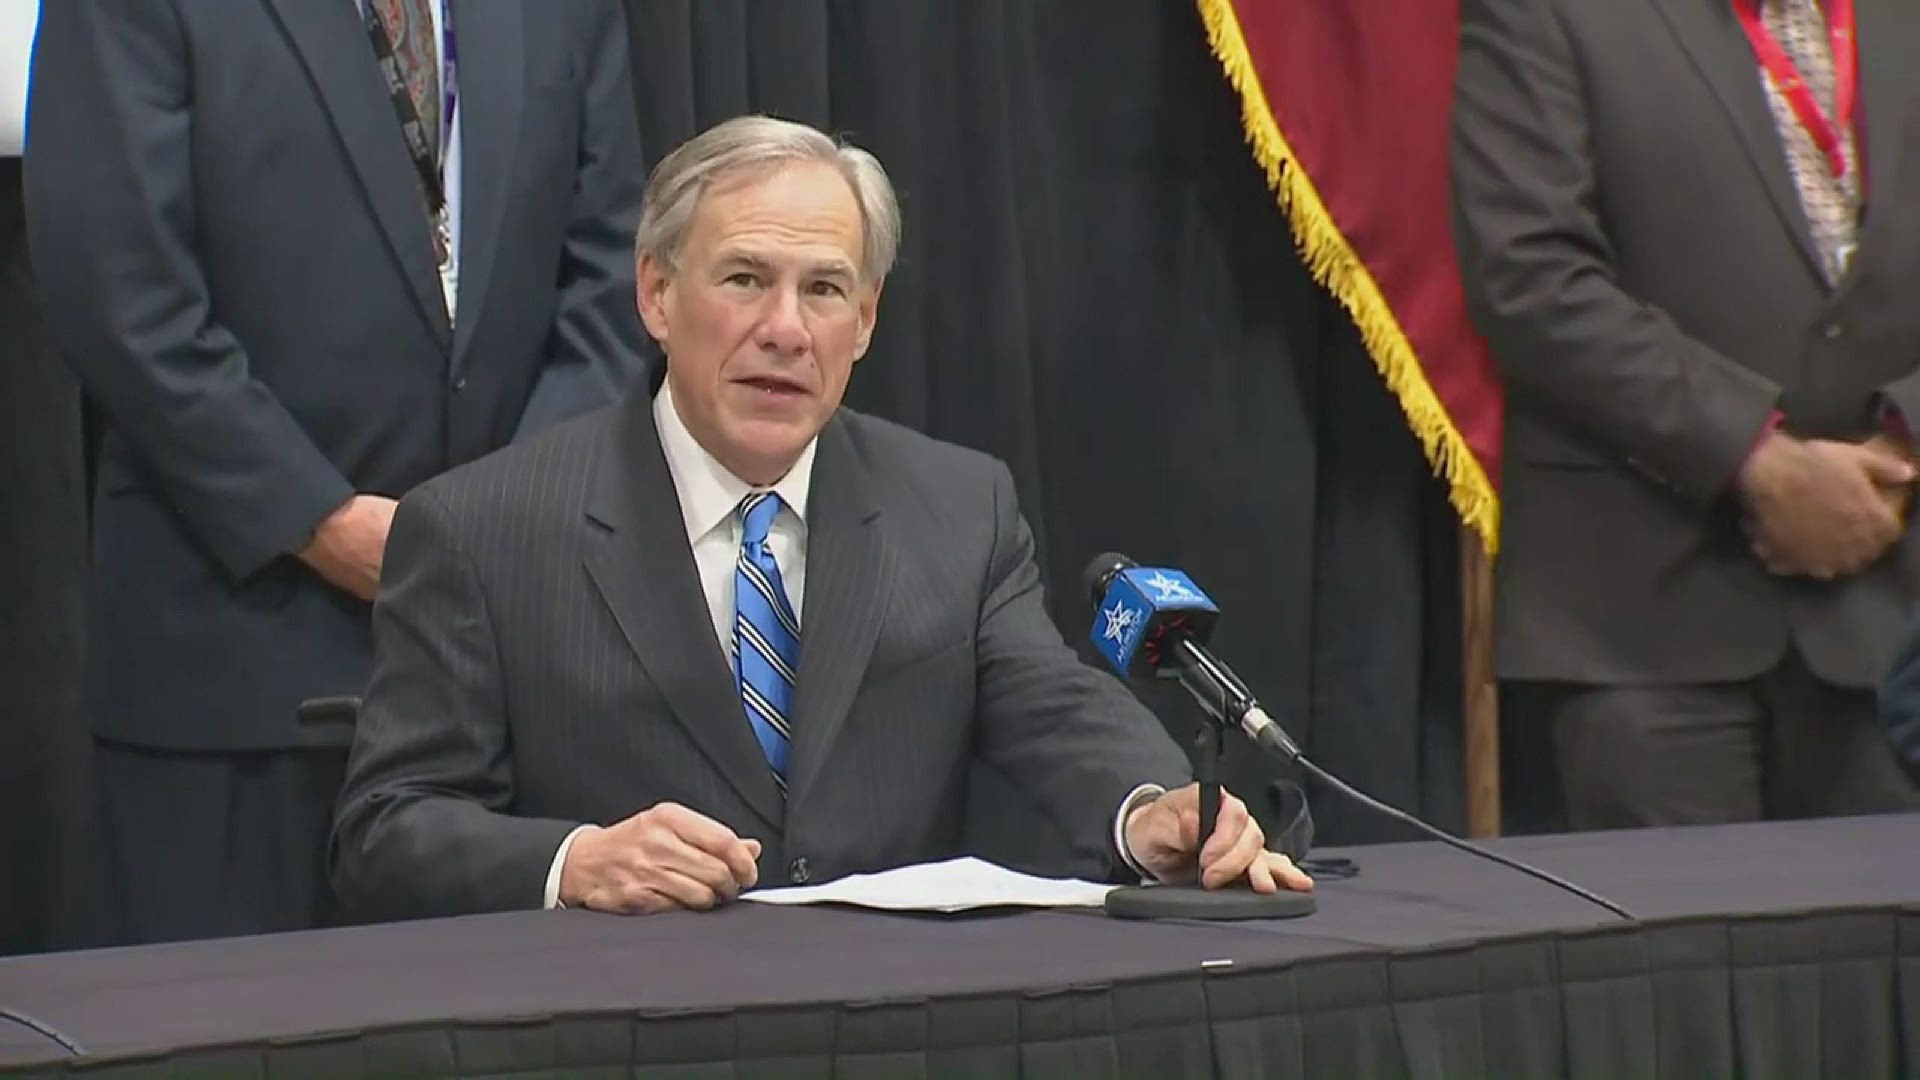 Abbott to Provide Safety for Texans at the Border